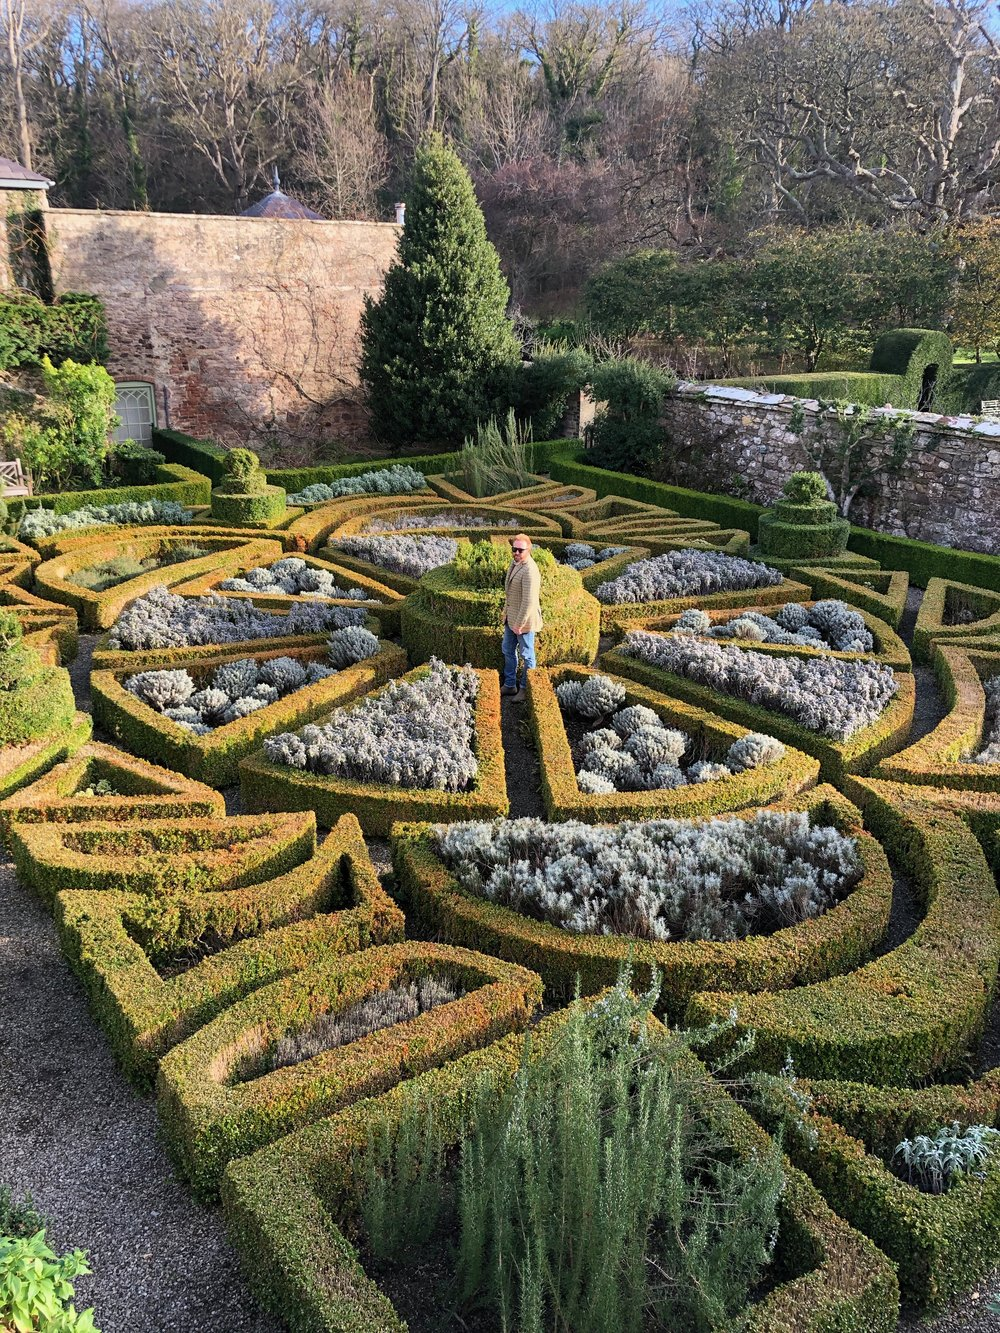 Where's Wally? Lost in the Parterre.